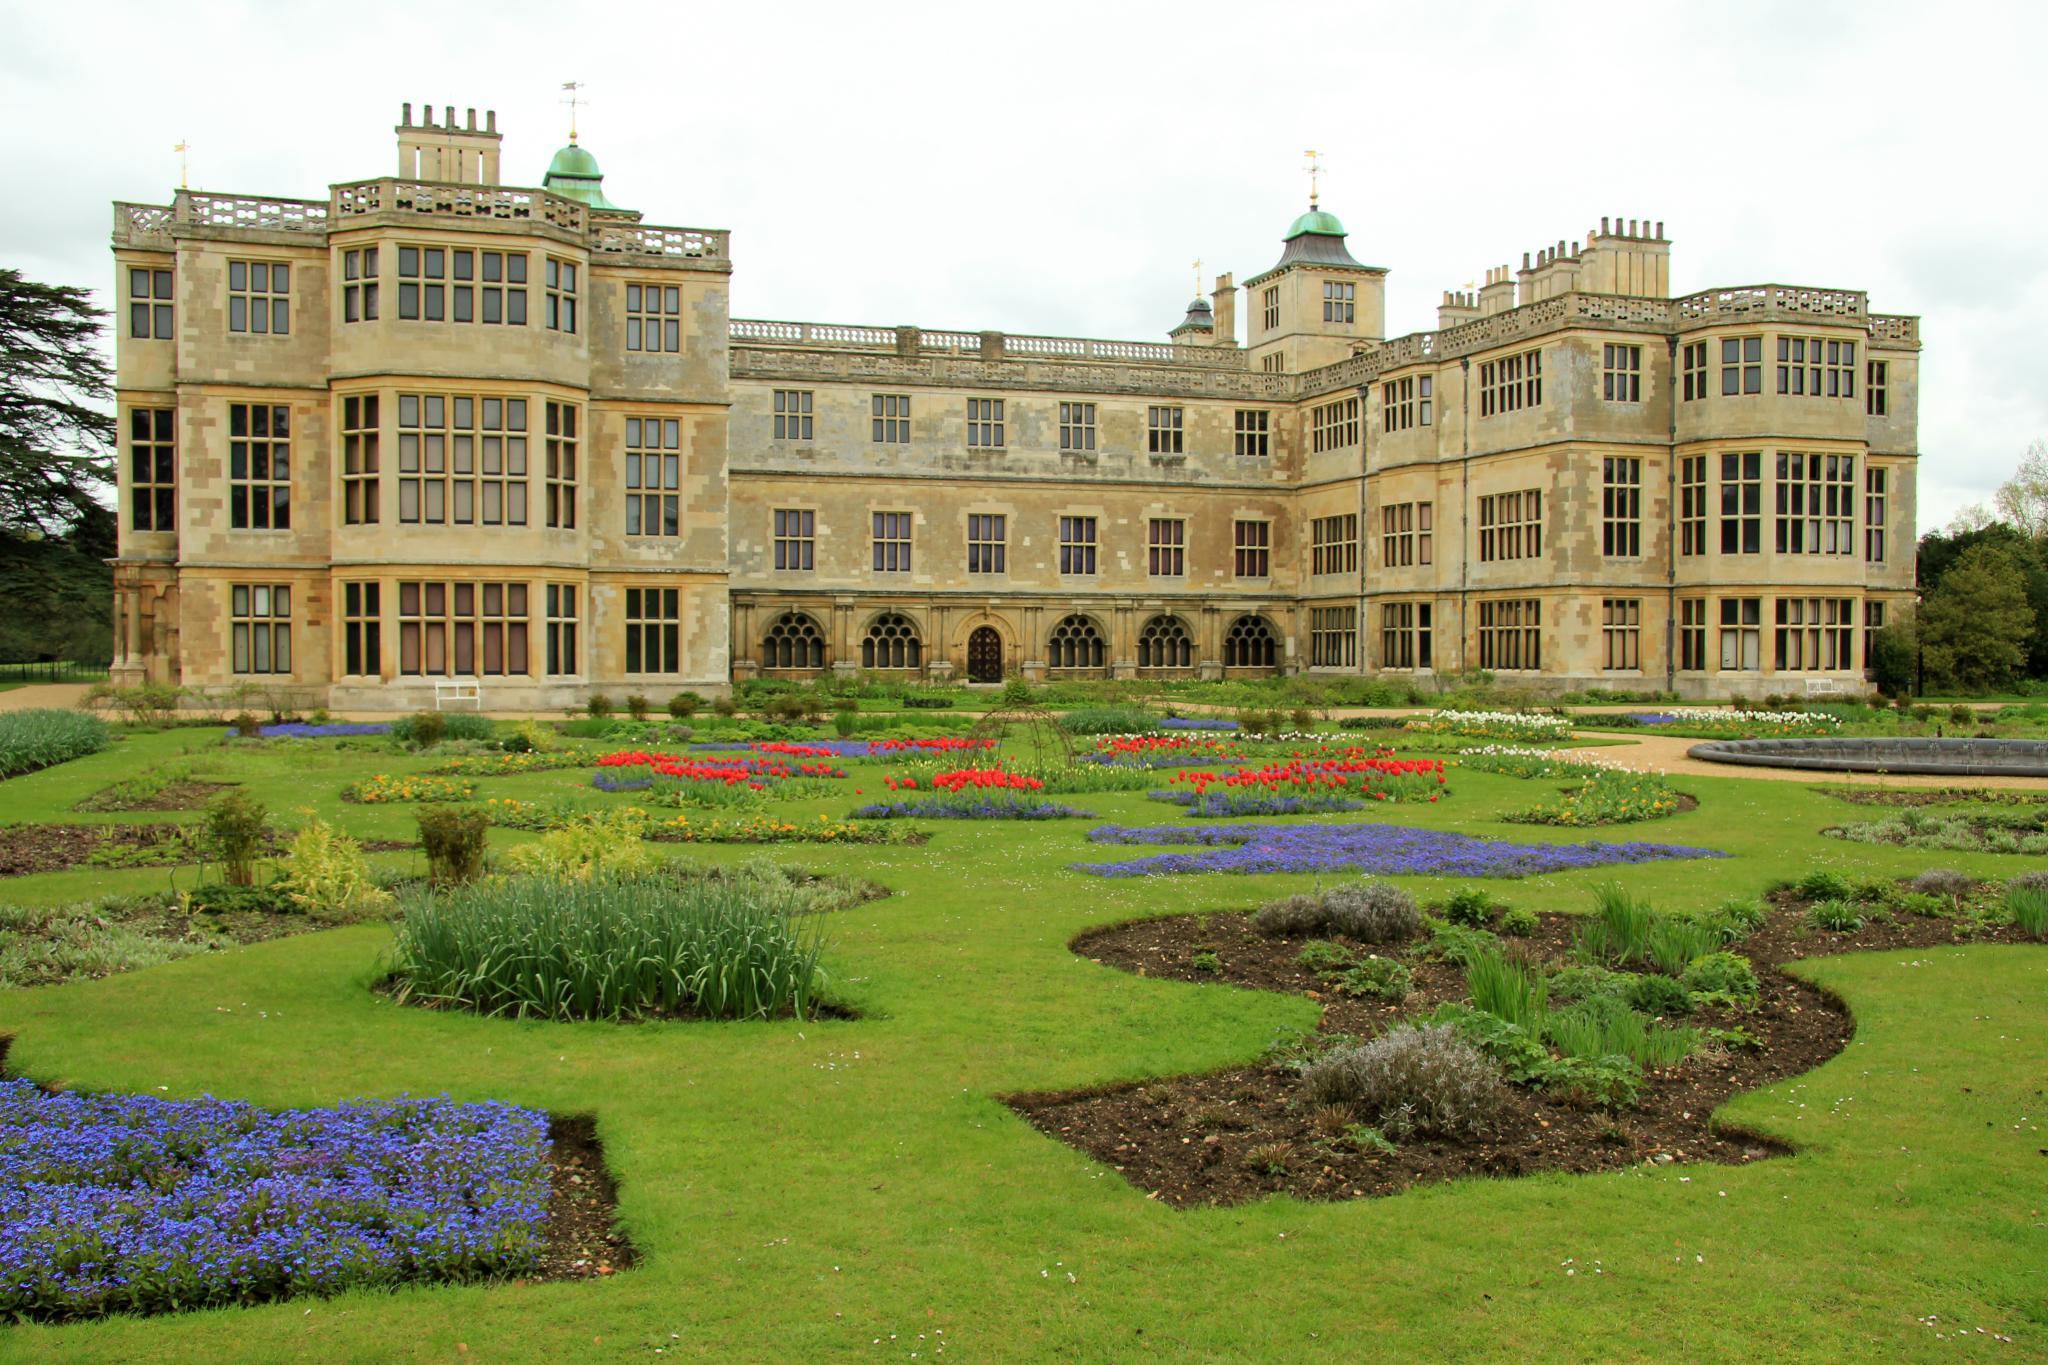 File:Audley End House & Gardens (EH) 06-05-2012 (7710603998).jpg ...